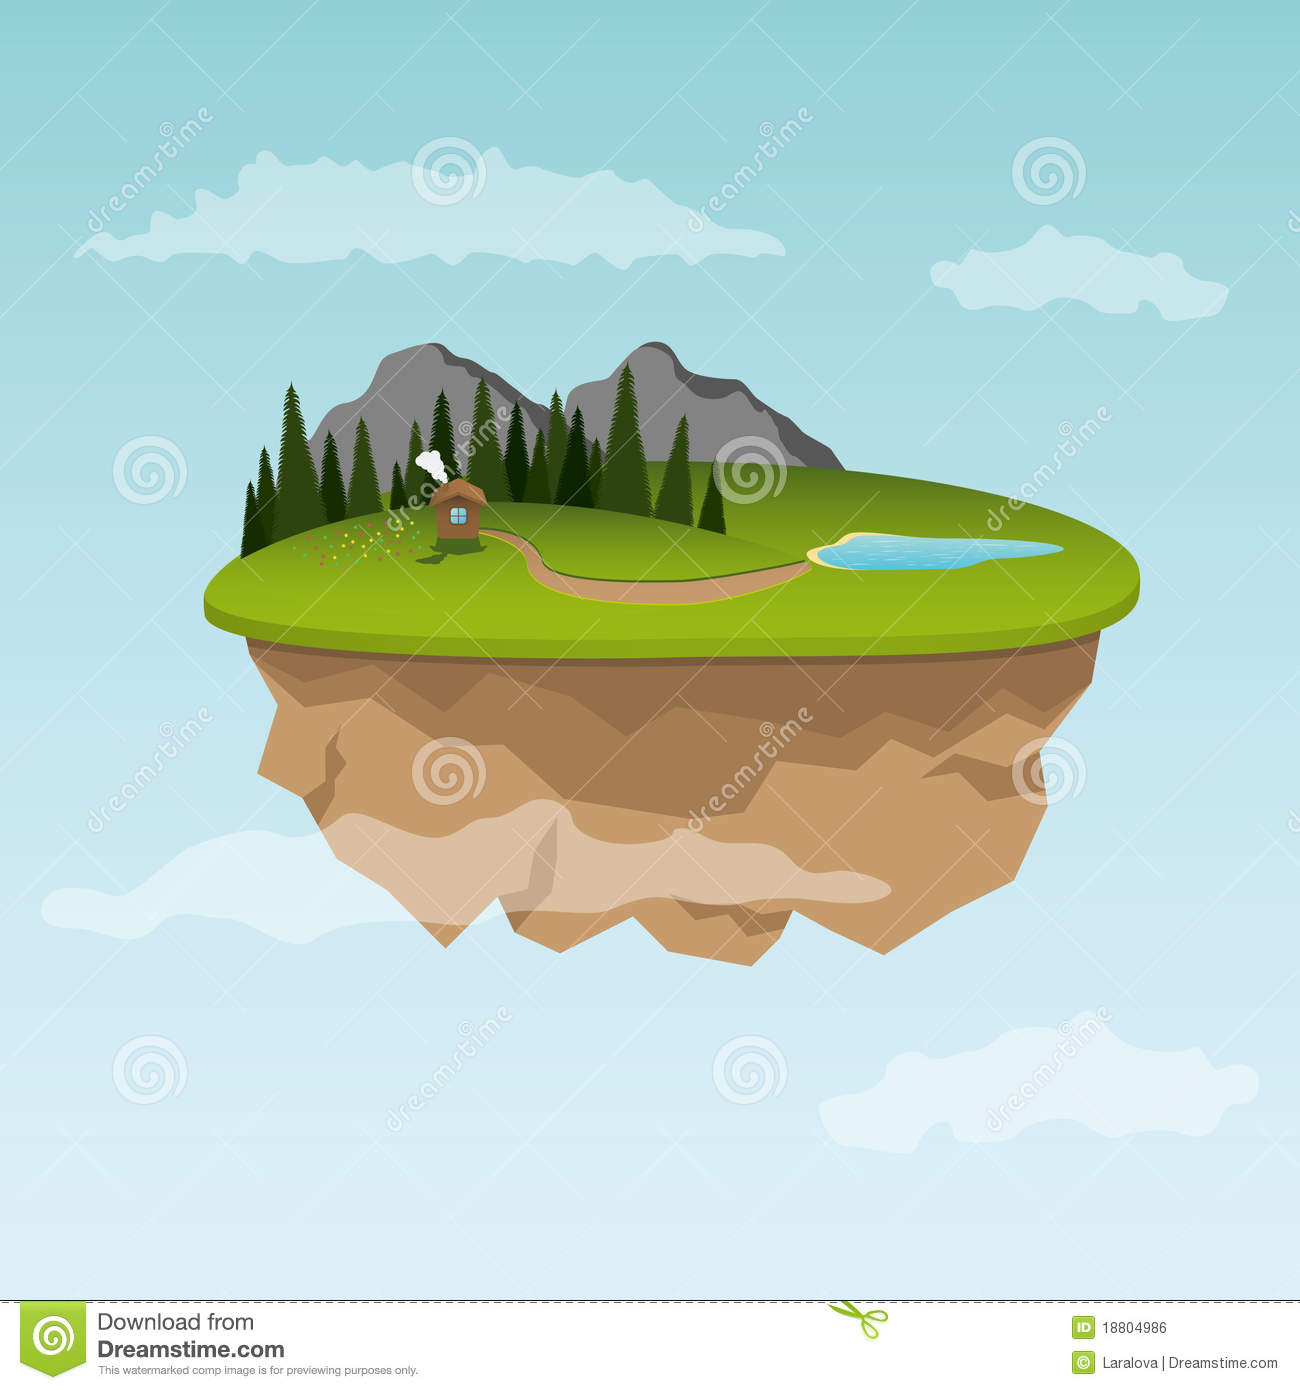 Floating Island With Small House Royalty Free Stock Image.